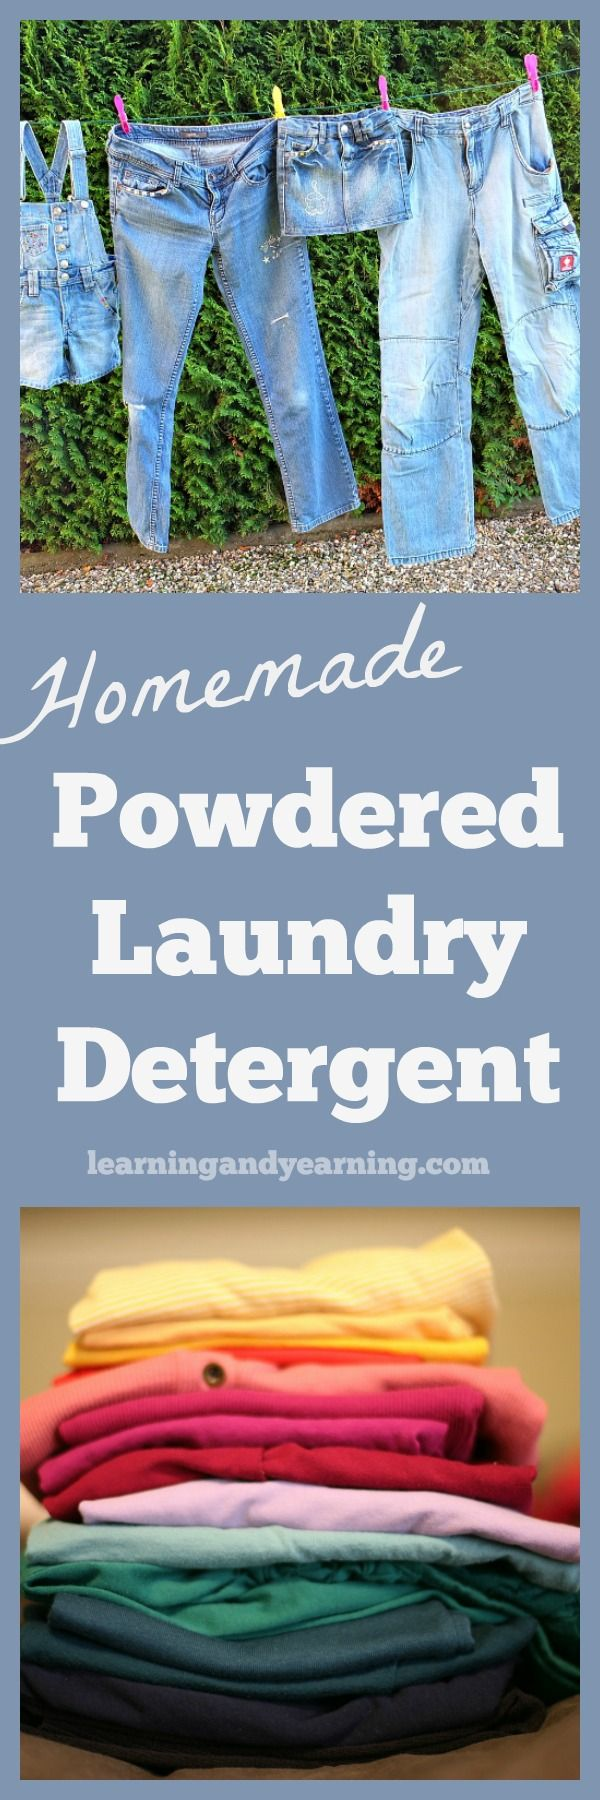 This homemade powdered laundry detergent is soap-and-borax-free, and uses no harmful chemicals. It's economical and easy to make as well!